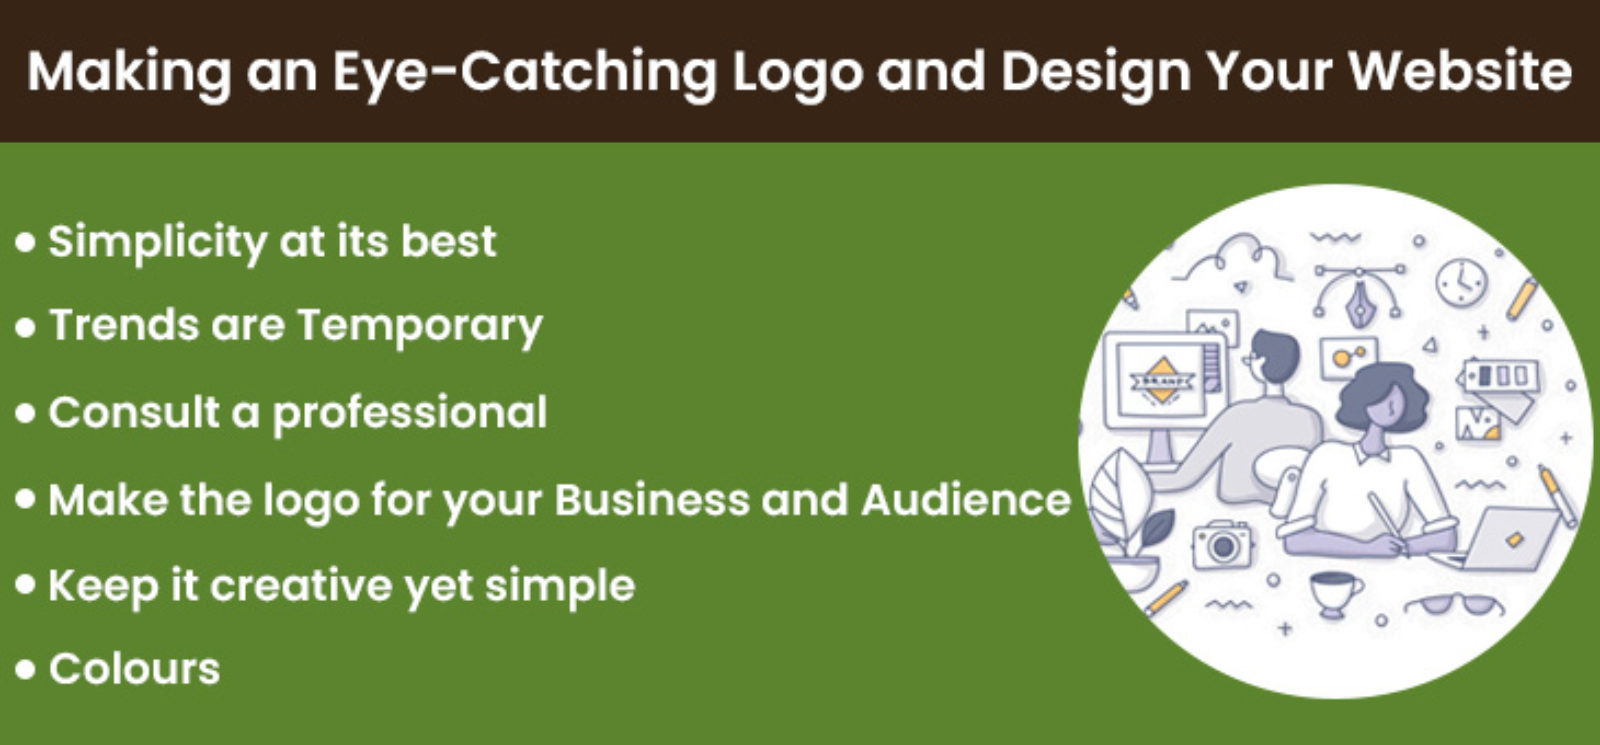 Making an Eye-Catching Logo and Design Your Website